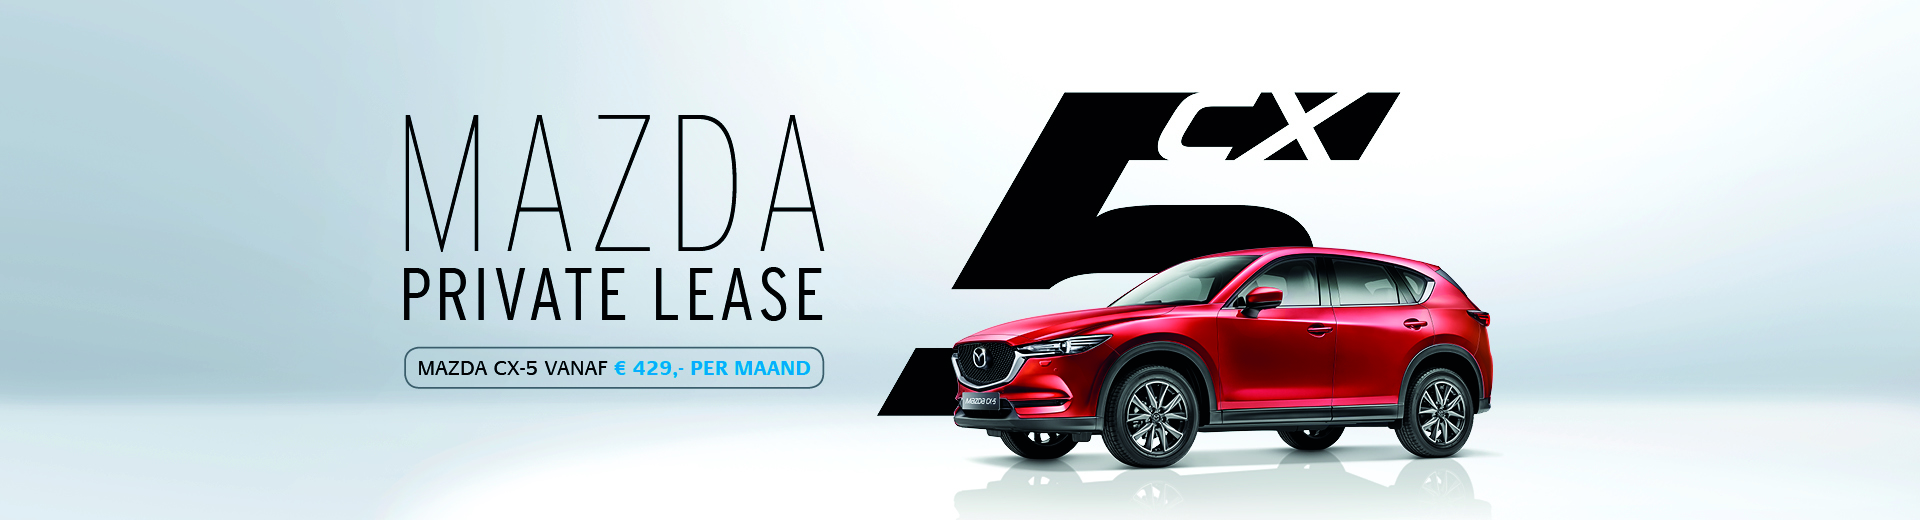 180290 Banner Mazda CX-5_Private Lease_1920x520px